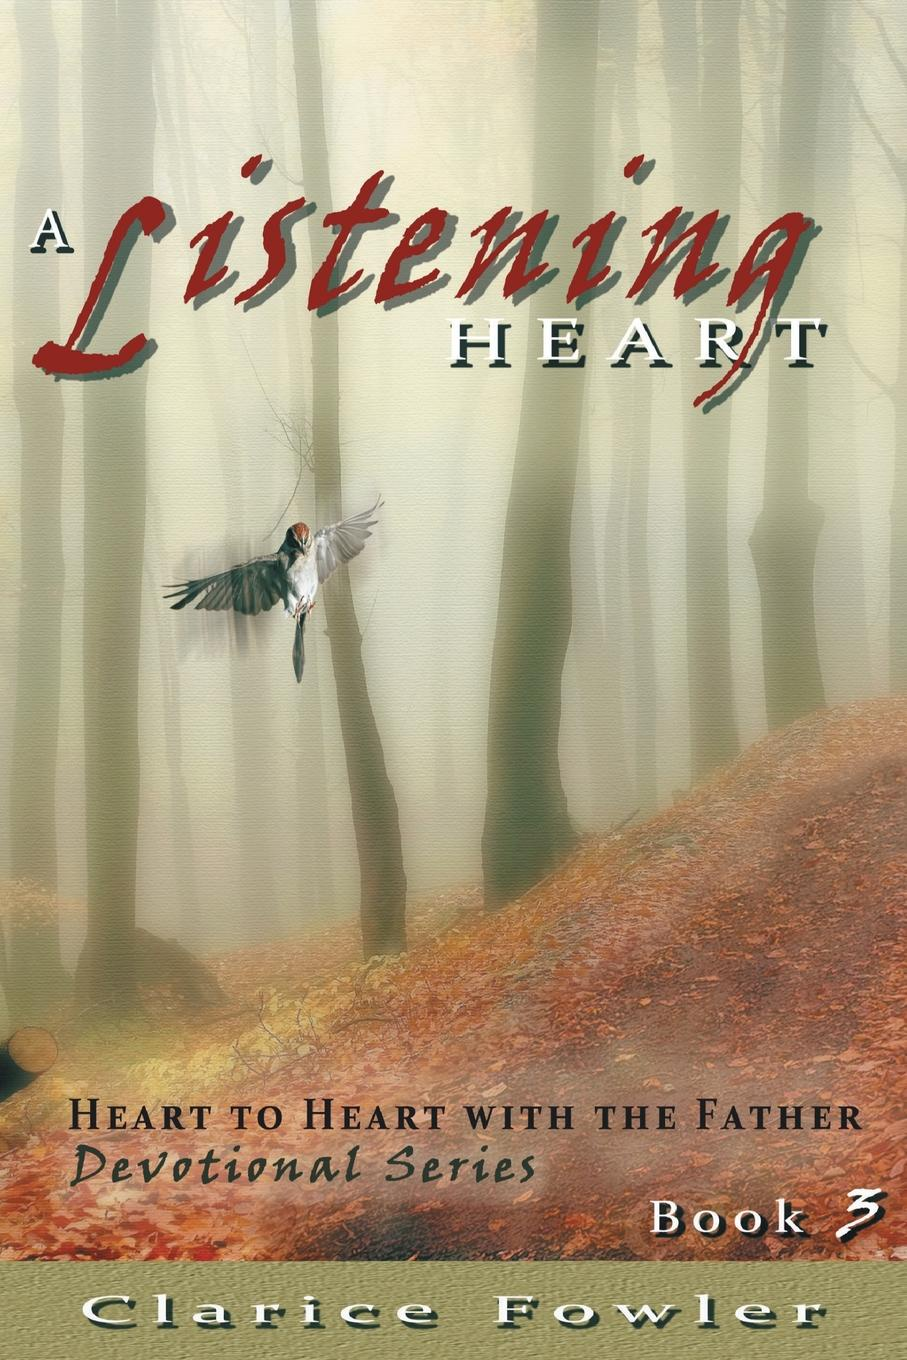 лучшая цена Clarice Fowler A Listening Heart. Heart to Heart with the Father Devotional Series Book 3